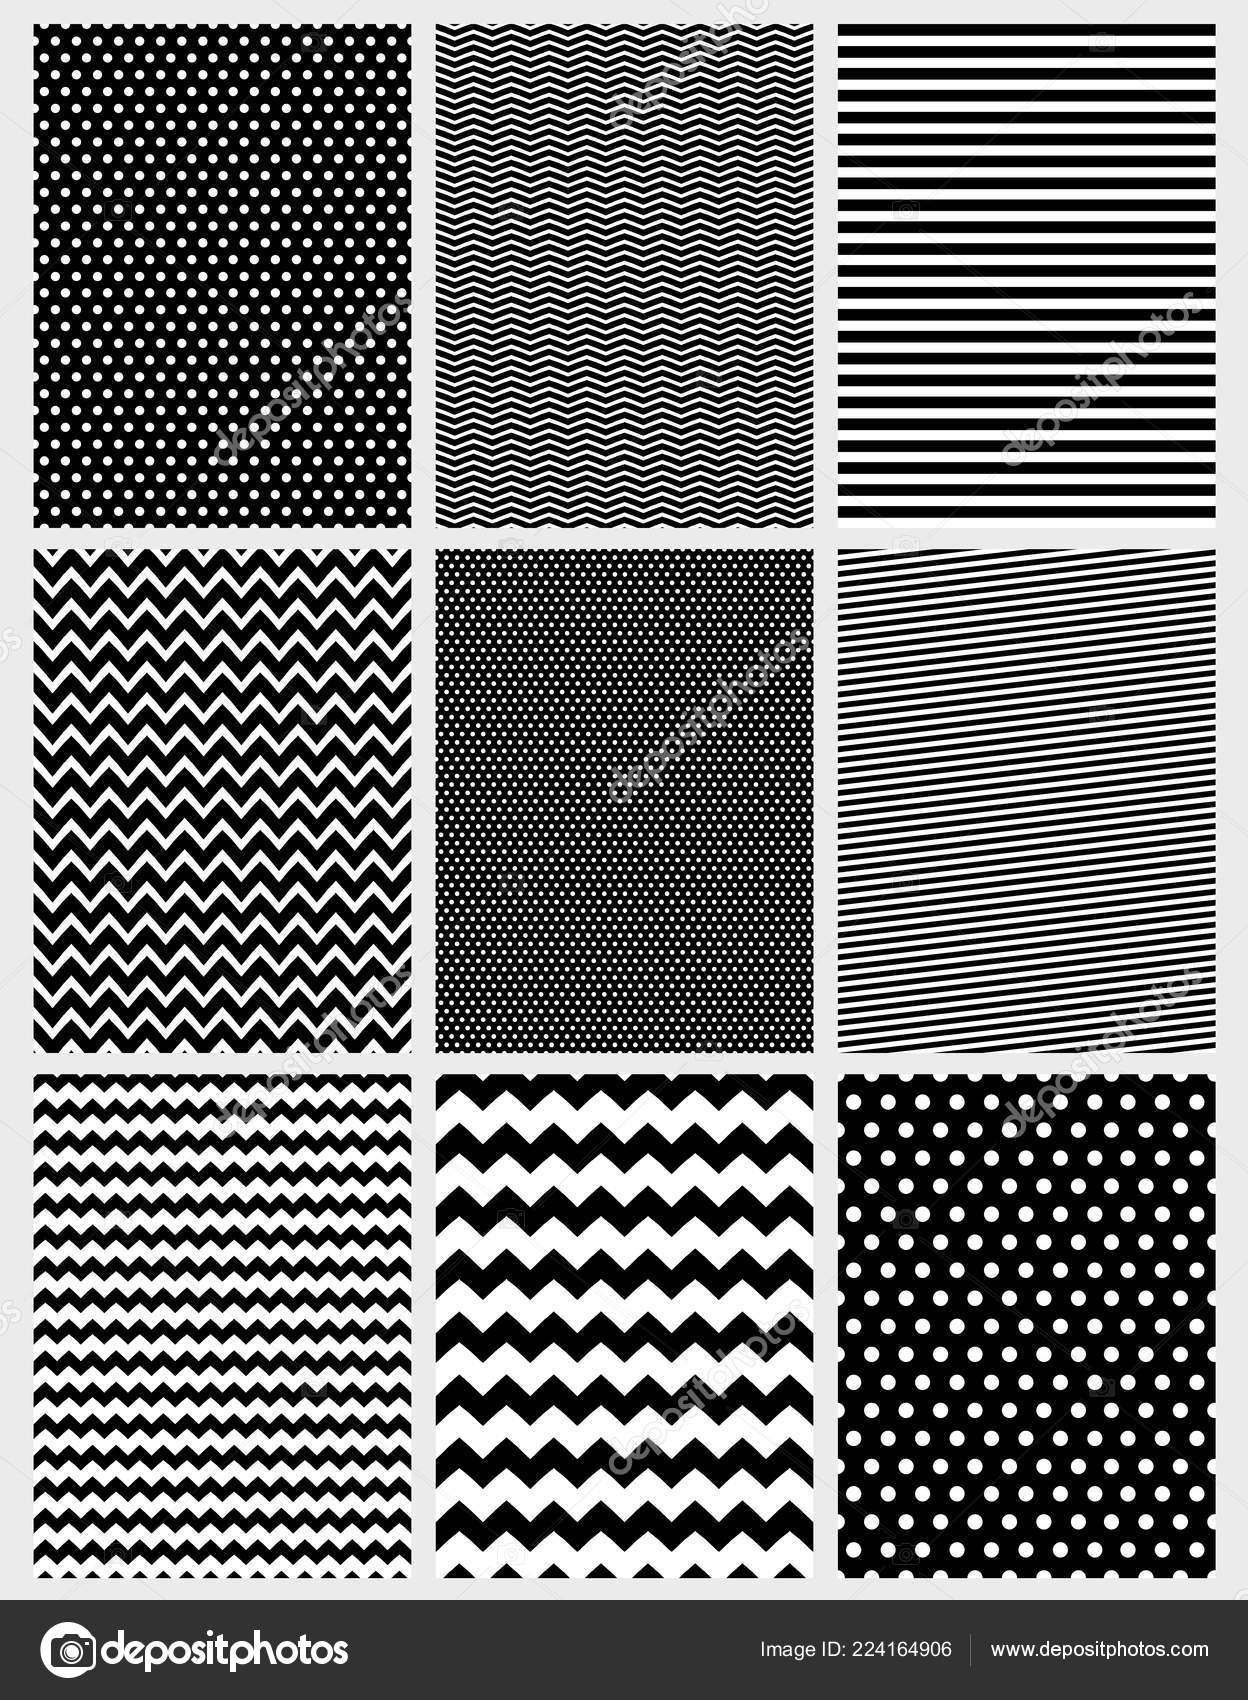 Cute Abstract Vector Patterns Set Various Geometric Designs Black White Image By C Xnova Stock 224164906